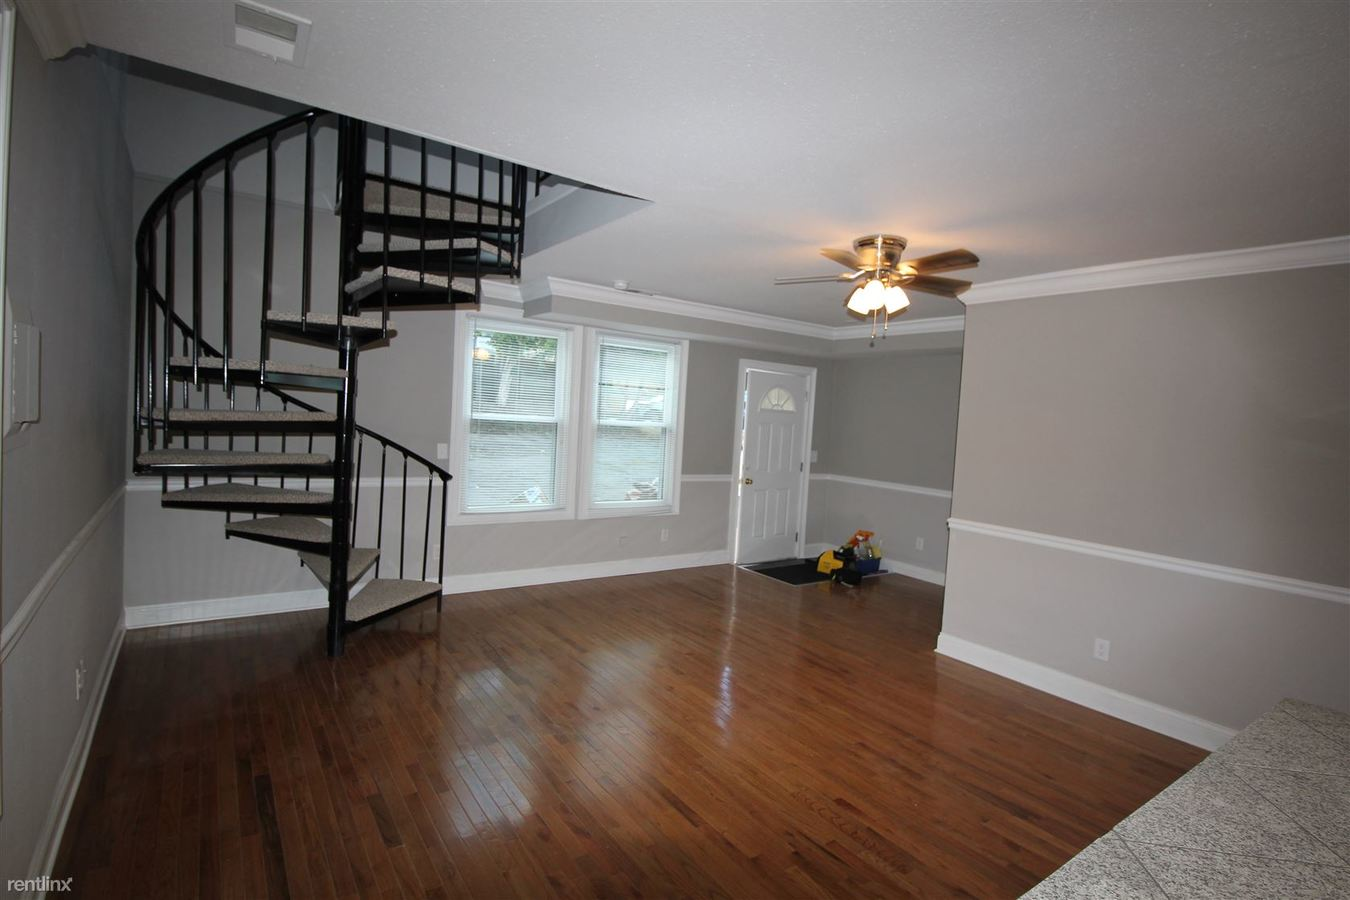 1 Bedroom 1 Bathroom House for rent at 117 Perrin St in Ypsilanti, MI